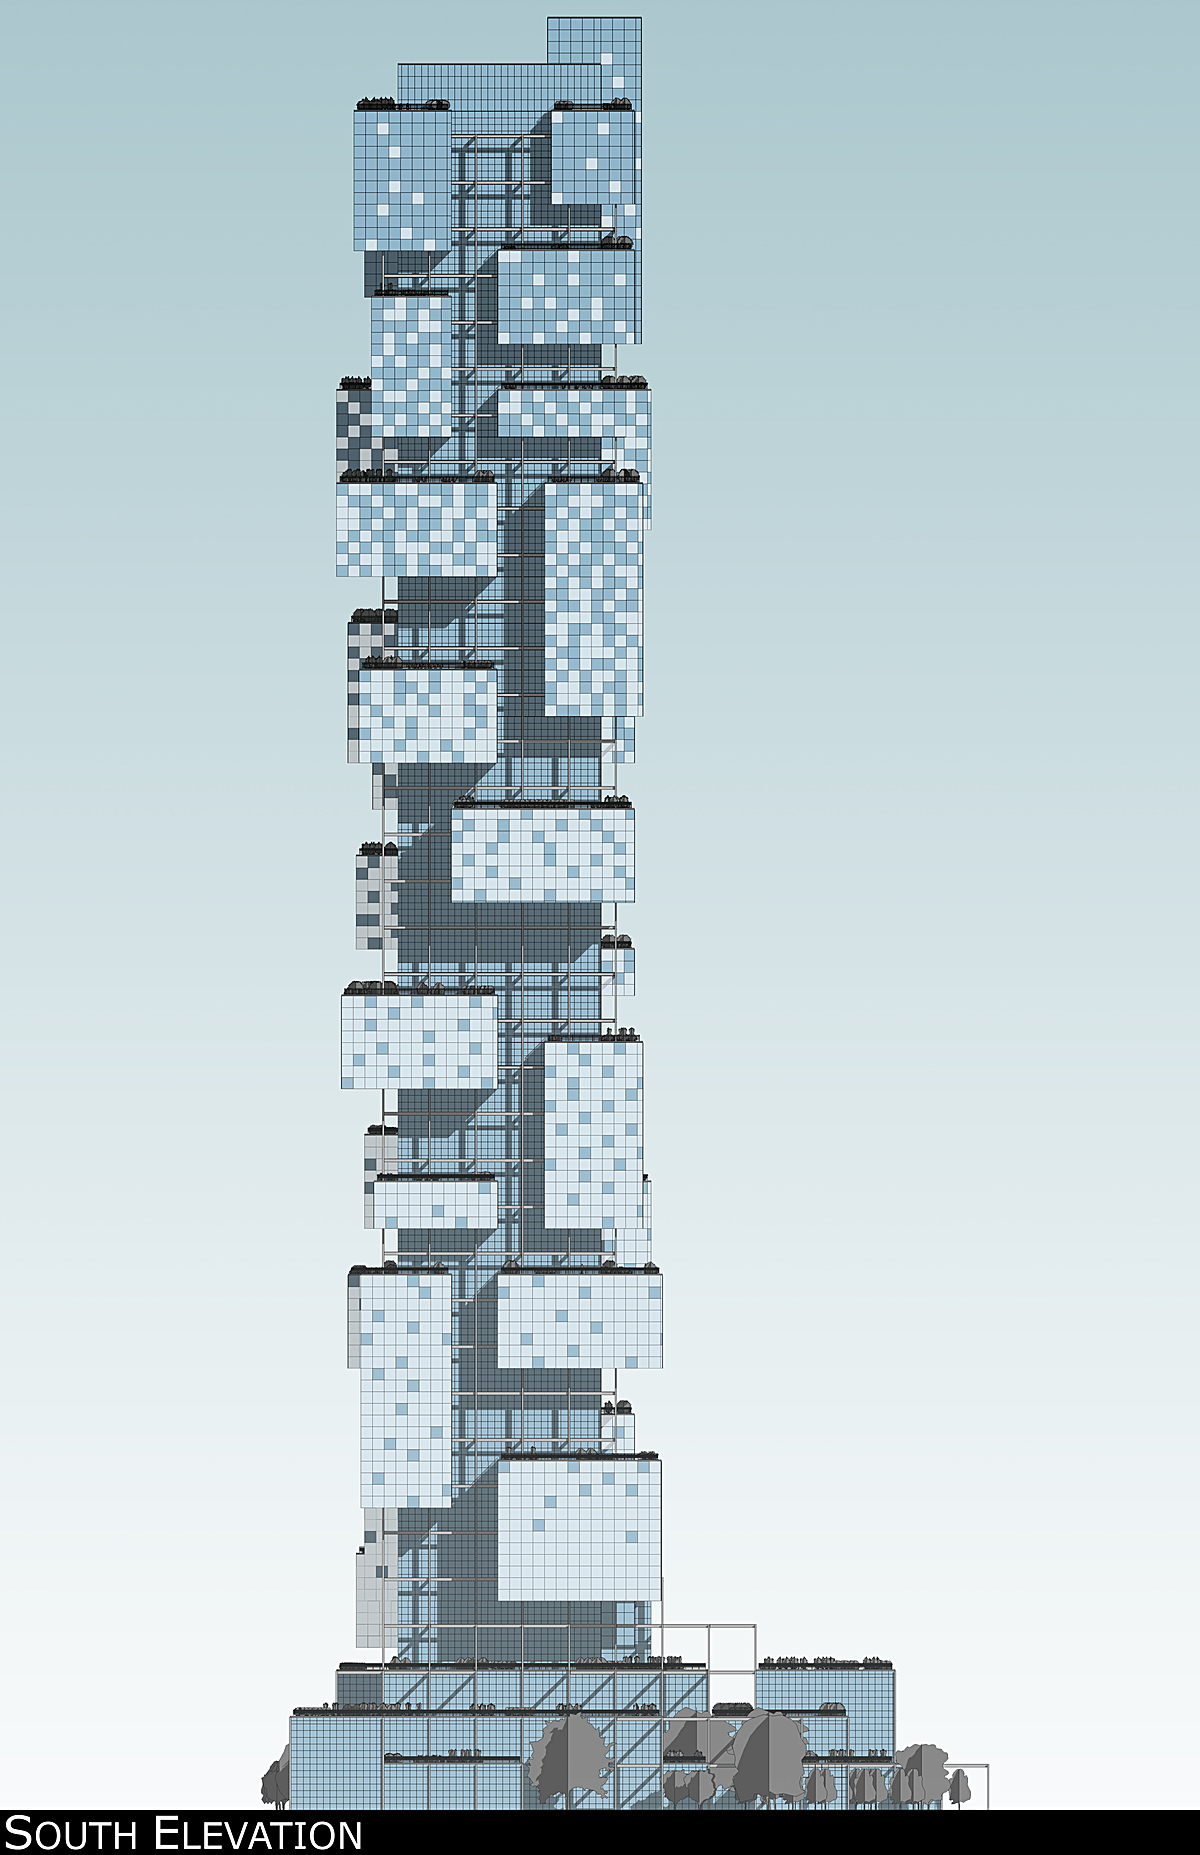 South elevation rendering showing one possible pattern achievable with smart glass